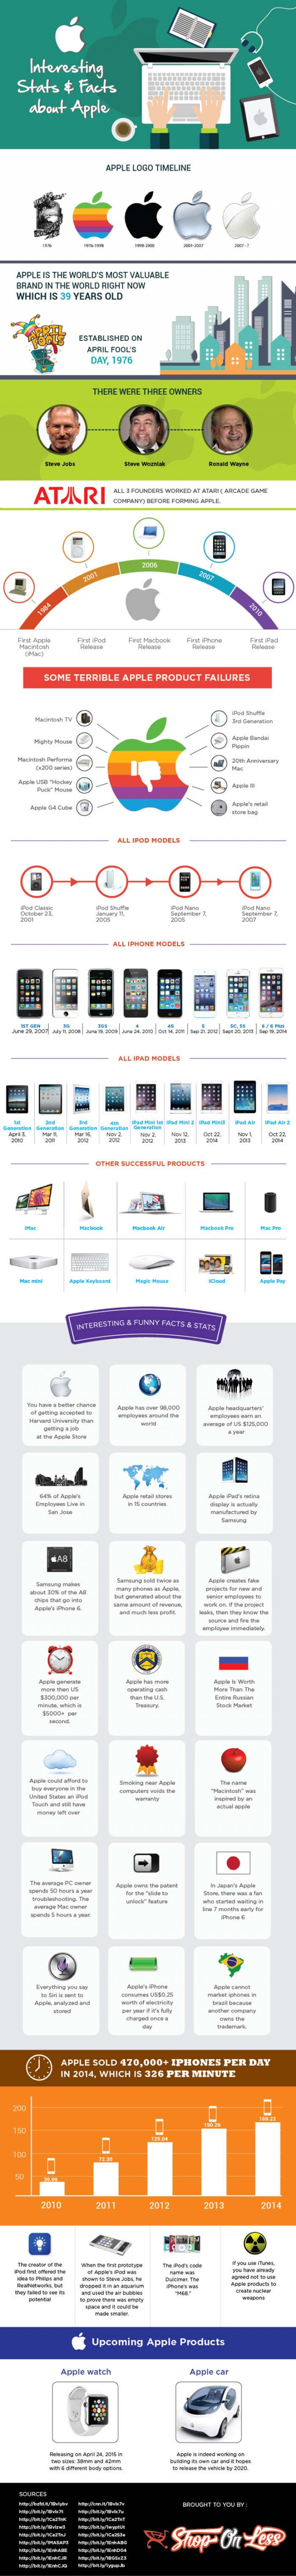 Interesting Stats & Facts about Apple – infographic